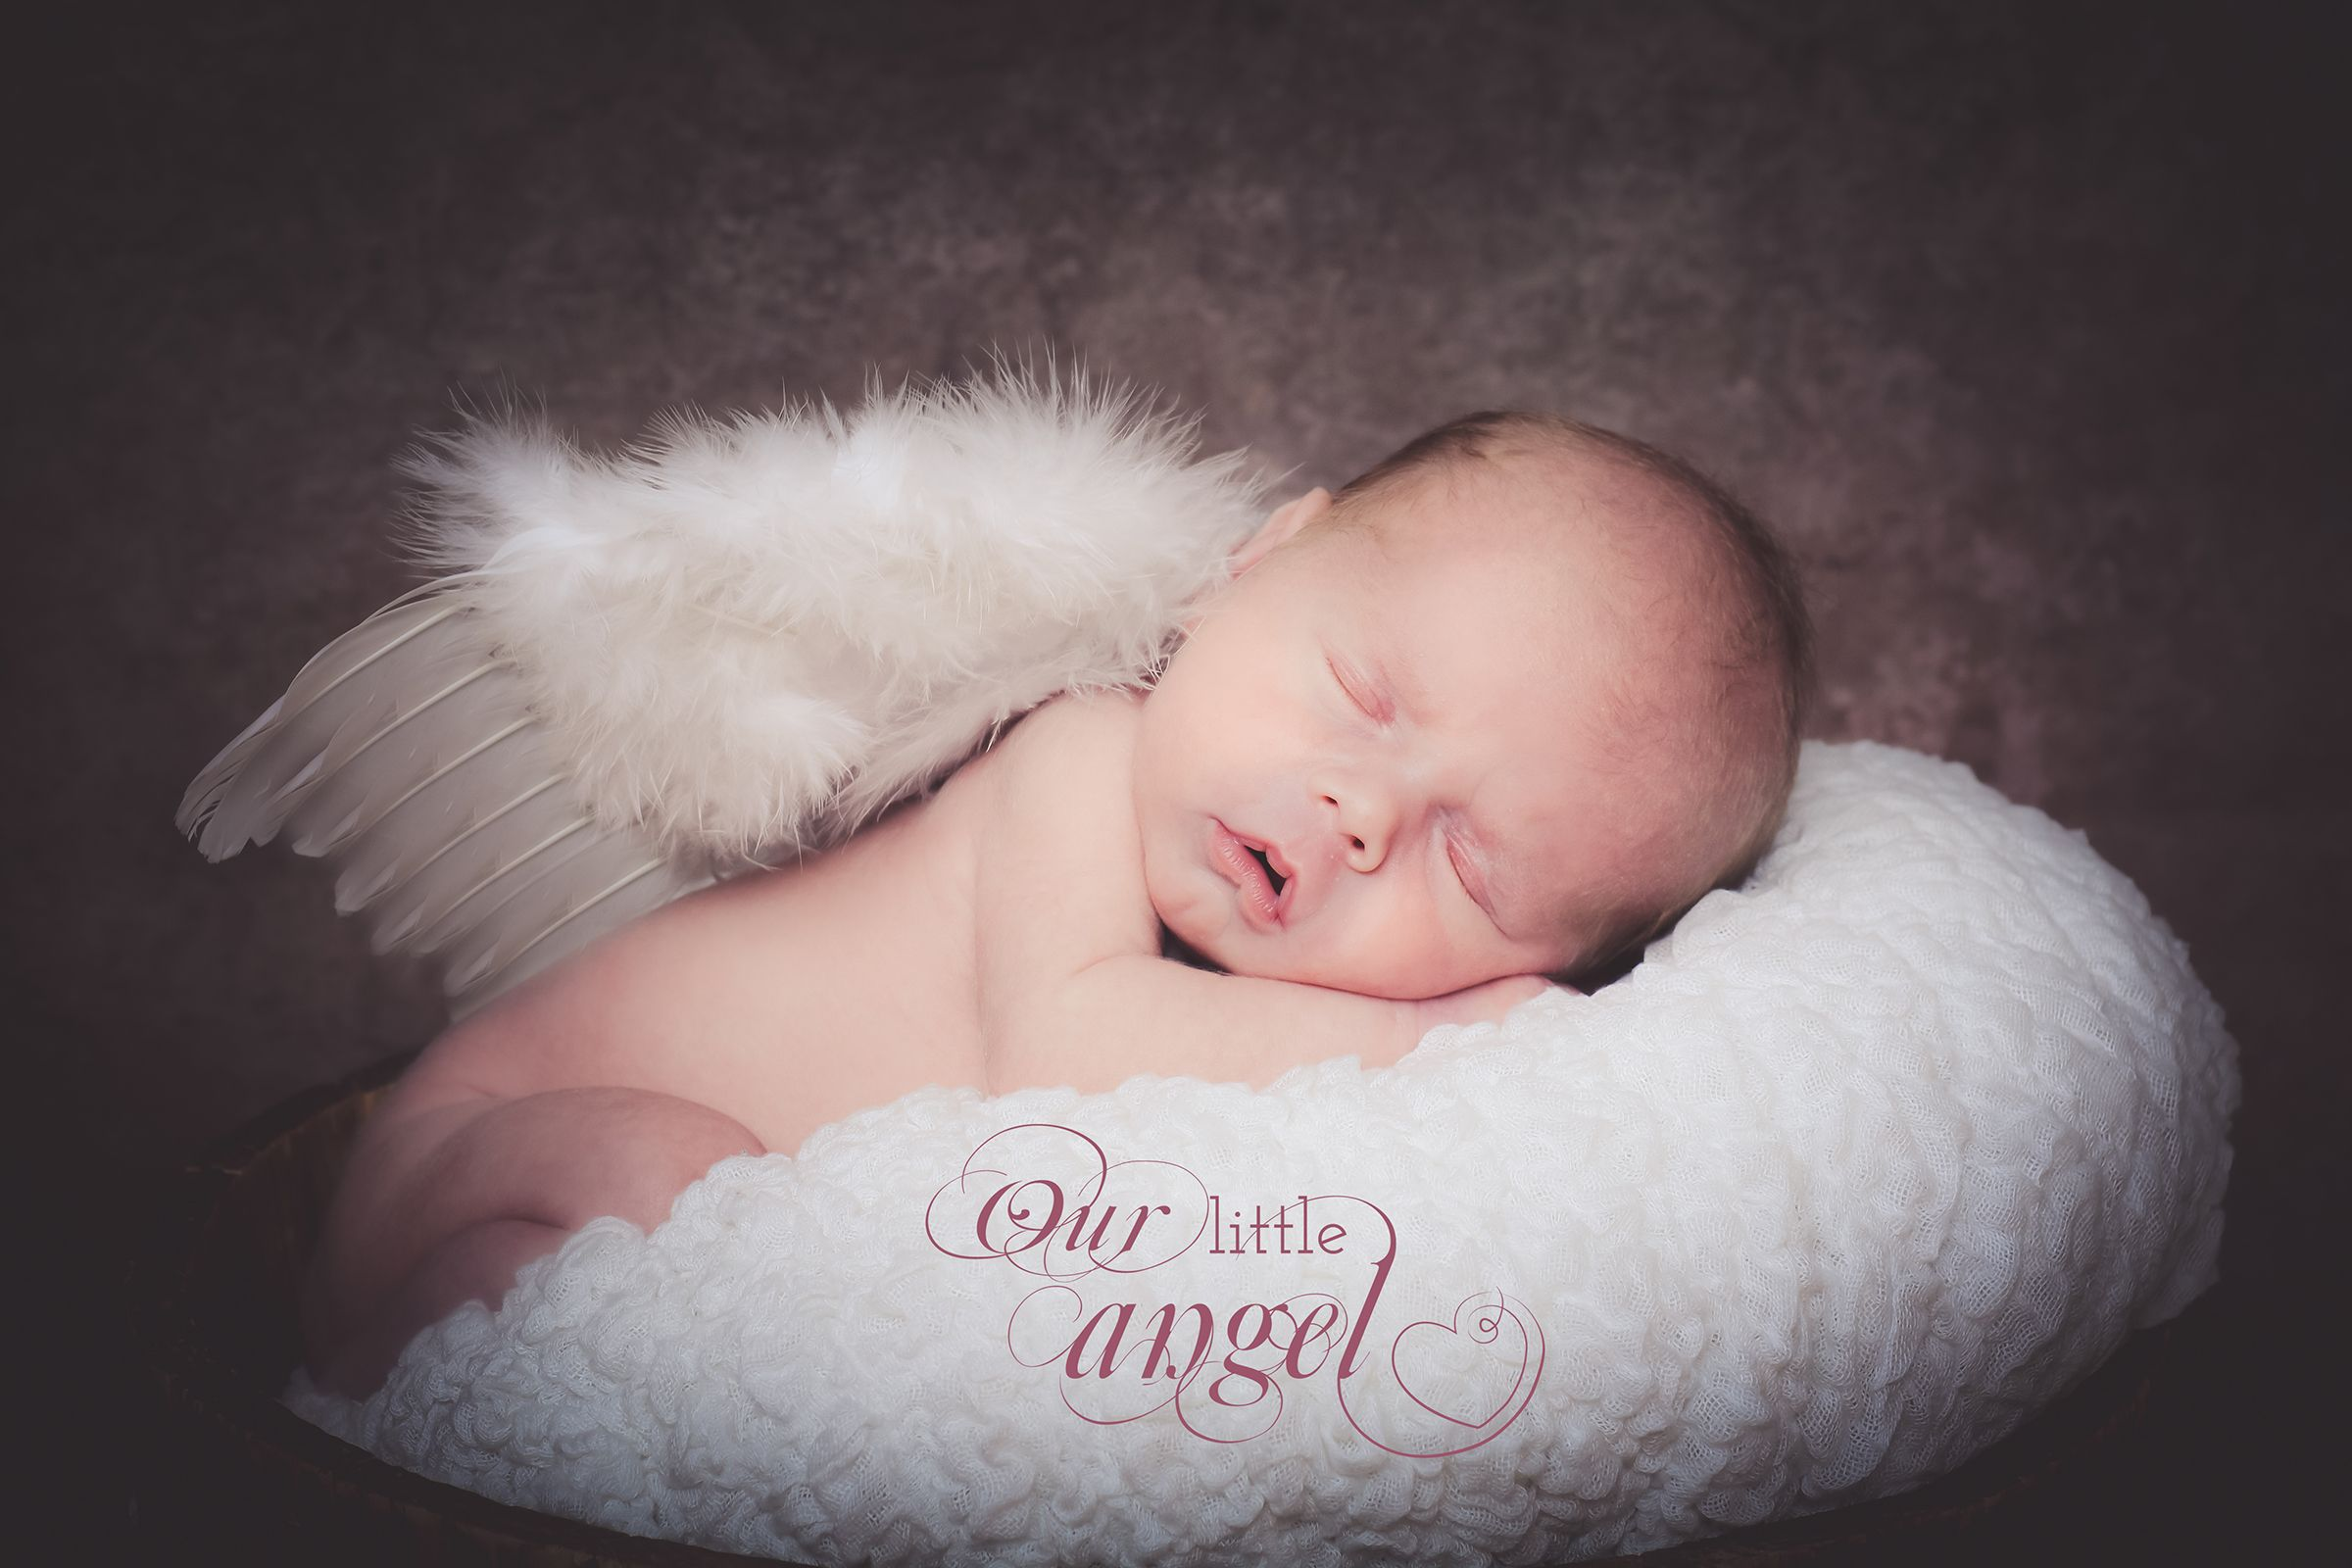 A beautiful baby girls newborn photoshoot using angel wings as a prop